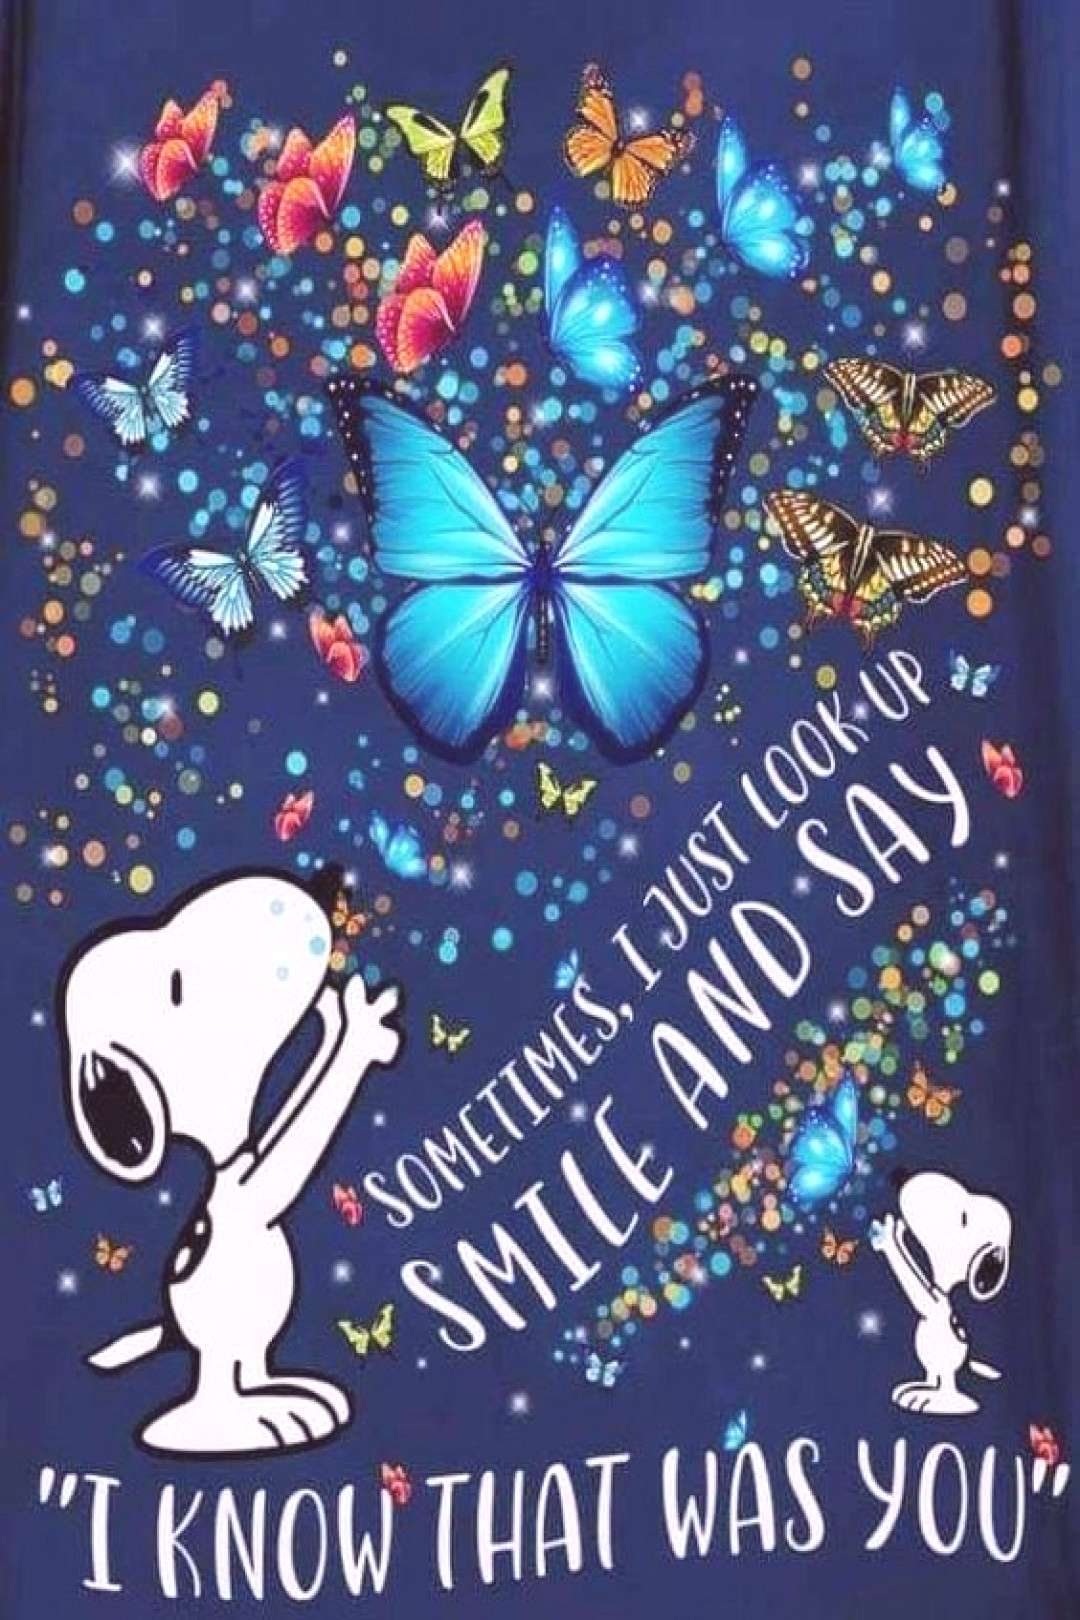 Snoopy Butterflies - I just love this image I found on Pinterest. Very colorful. And I simply love